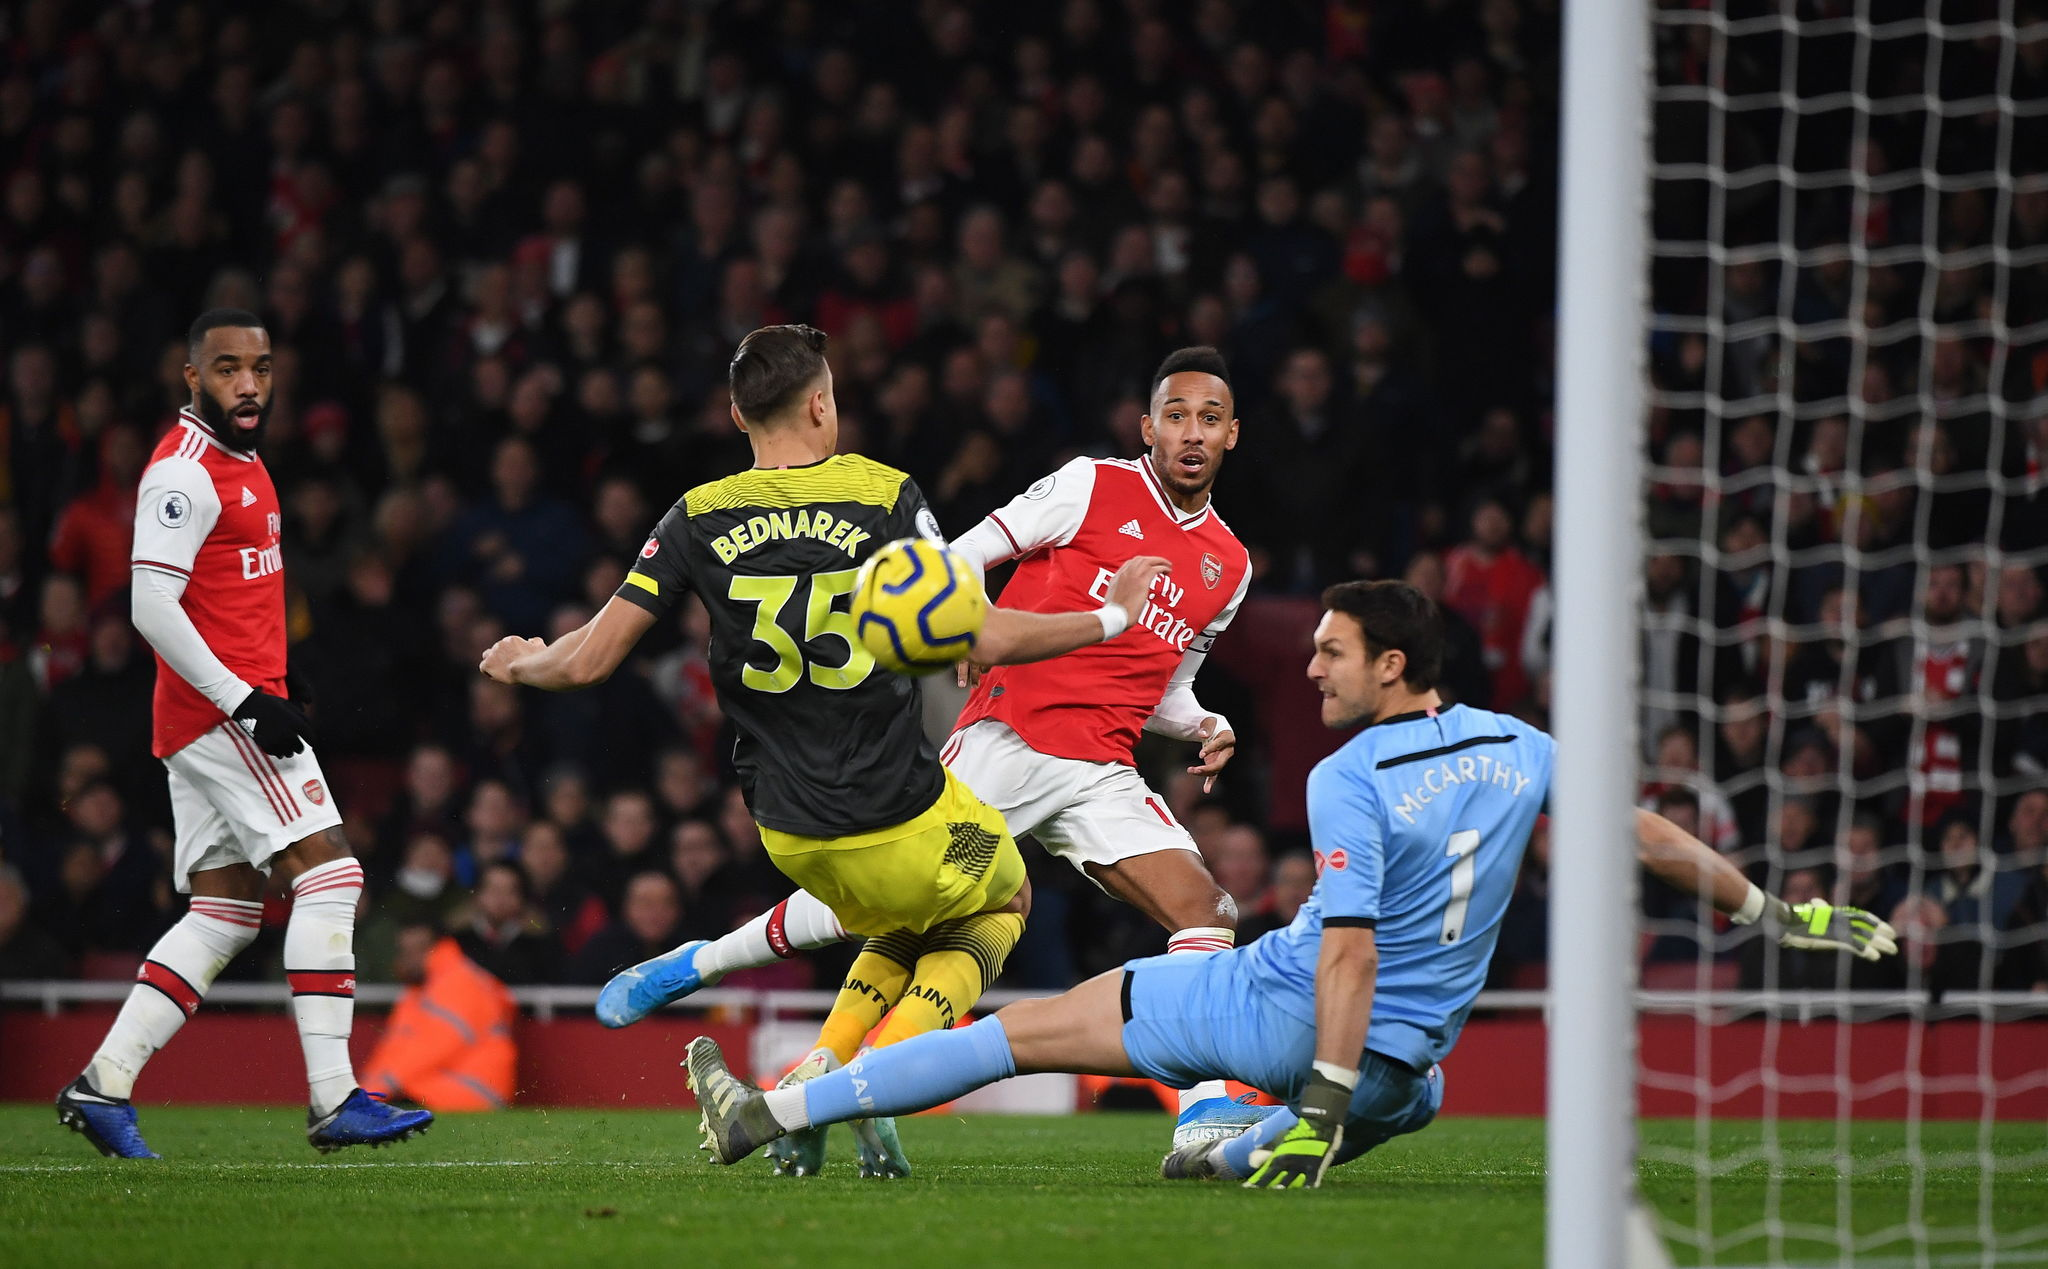 London (United Kingdom), 23/11/2019.- <HIT>Arsenal</HIT>s Pierre- Emerick Aubamemeyang (R) in action during the English Premier League soccer match between <HIT>Arsenal</HIT> and Southampton in London, Britain, 23 November 2019. (Reino Unido, Londres) EFE/EPA/ANDY RAIN EDITORIAL USE ONLY. No use with unauthorized audio, video, data, fixture lists, club/league logos or live services. Online in-match use limited to 120 images, no video emulation. No use in betting, games or single club/league/player publications